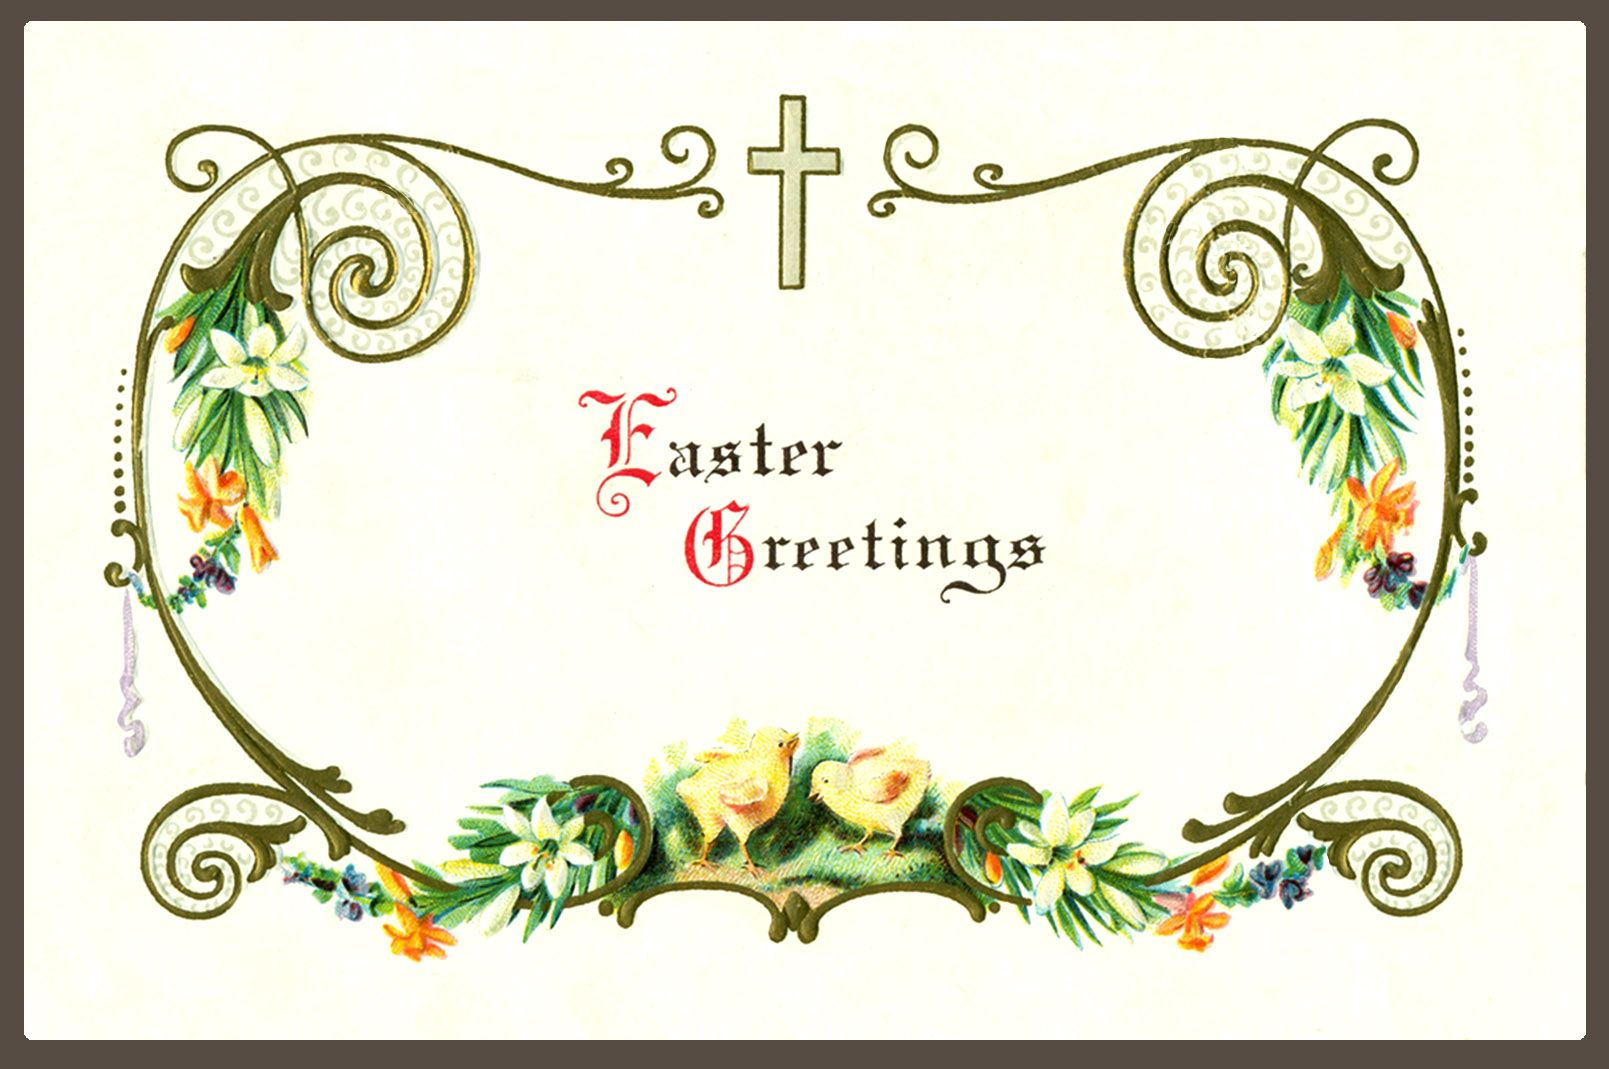 Happy easter cards 2018 happy easter greetings cards for your happy easter cards 2018 happy easter greetings cards for your loved one m4hsunfo